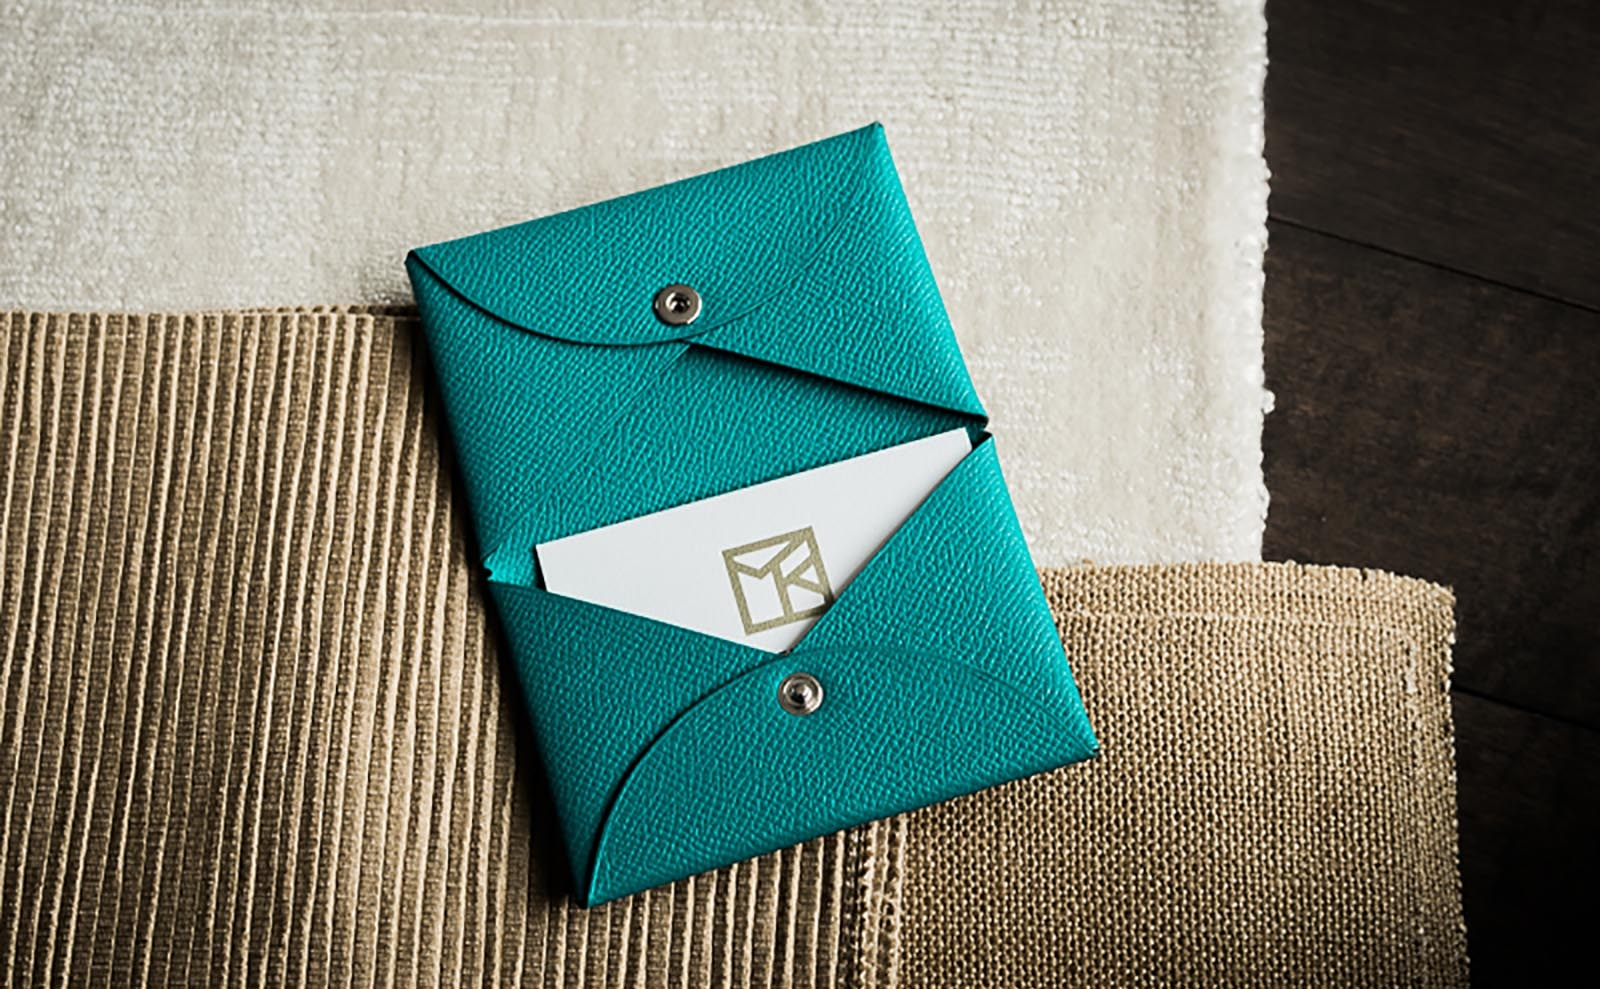 Morgan Kelly Interiors business cards and turquoise leather hermes card holder